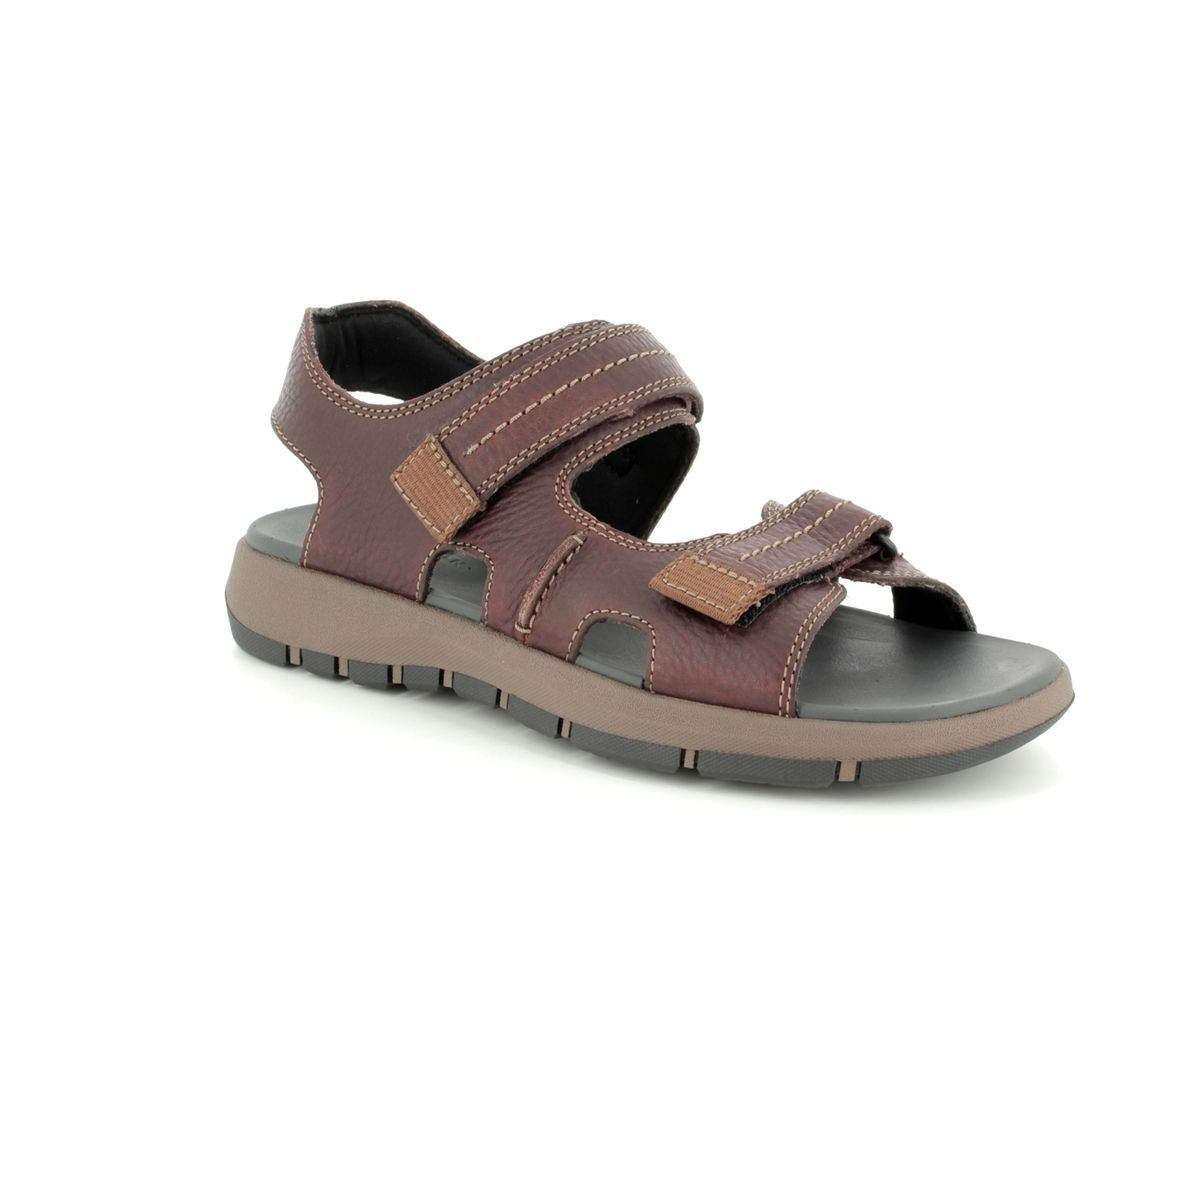 a4880d2d0c4 Clarks Sandals - Dark Brown - 3154 97G BRIXBY SHORE